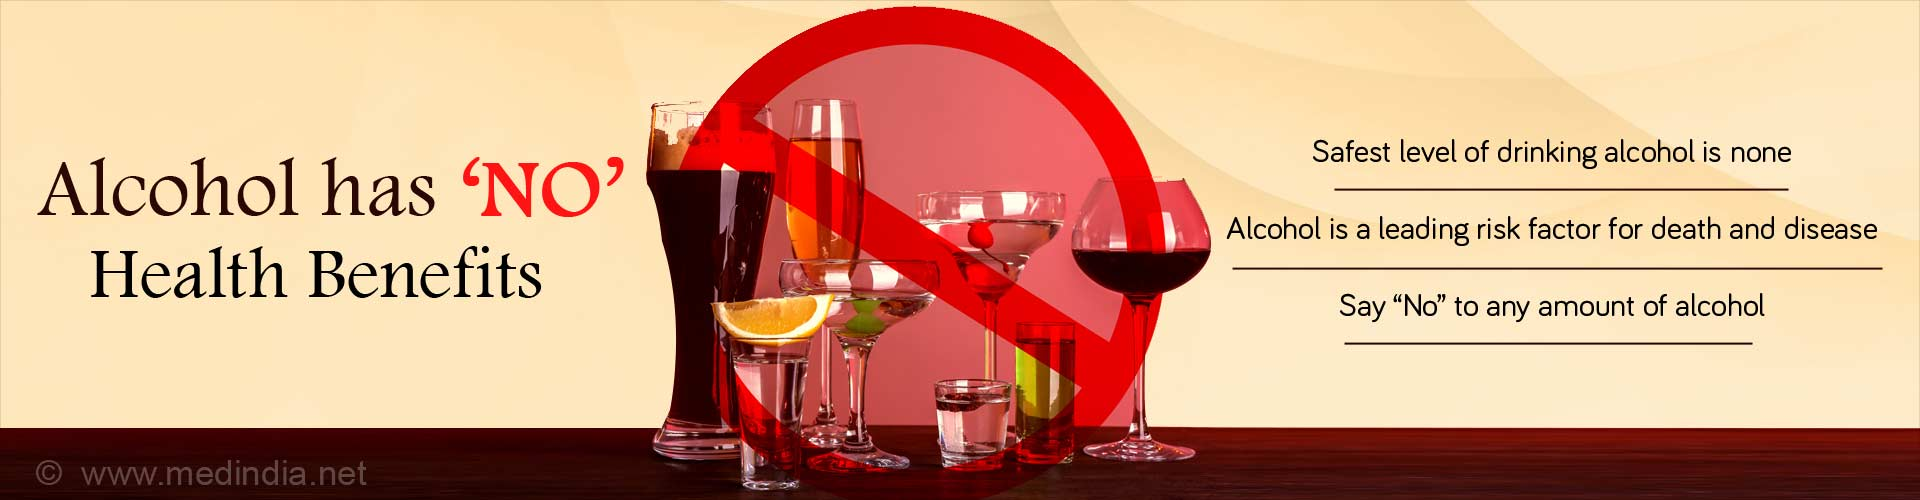 No Amount of Alcohol is 'Safe' for Health